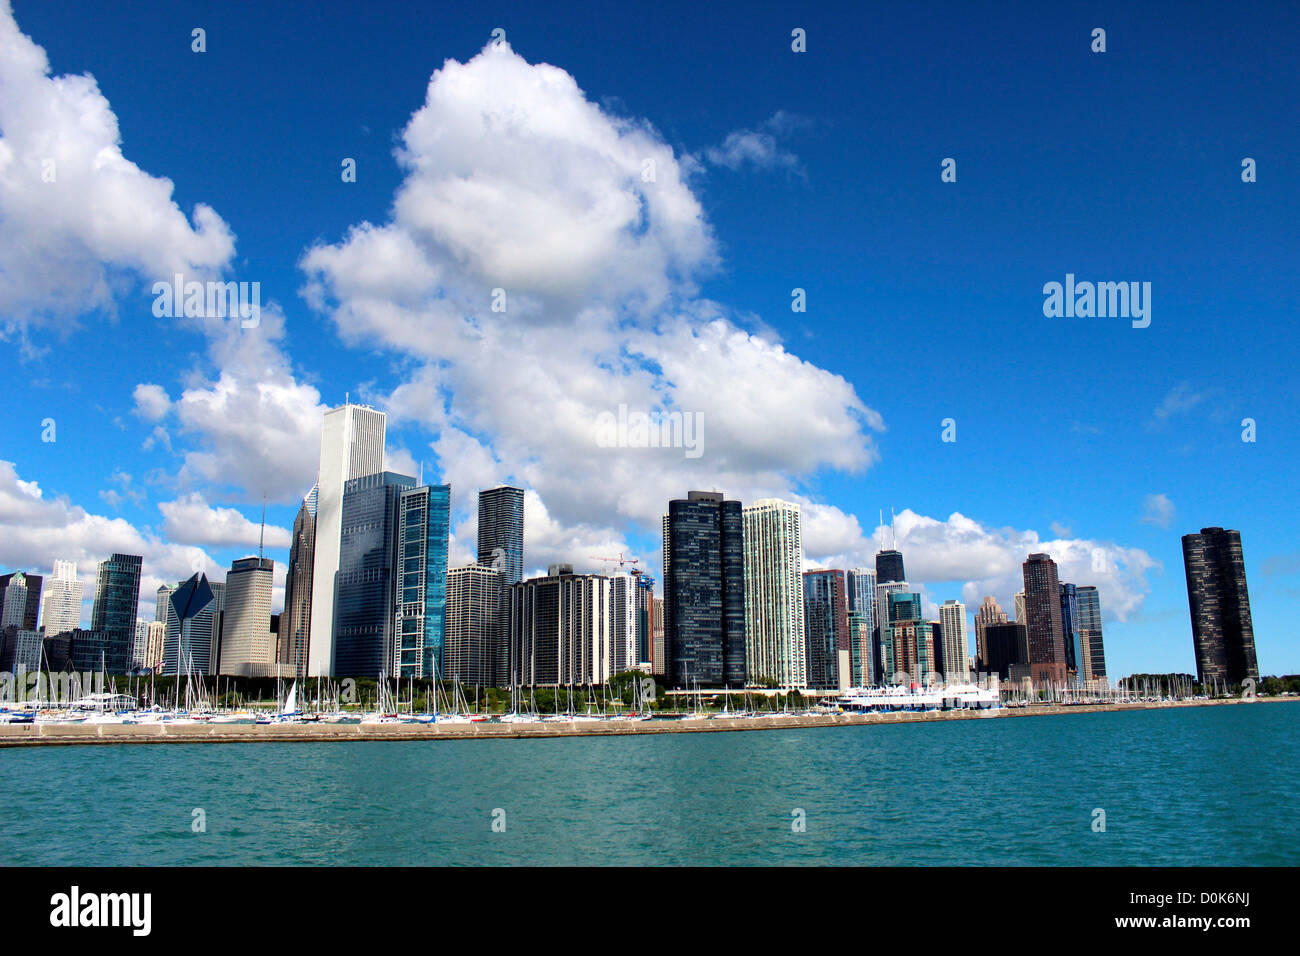 Downtown chicago illinois skyline view lake michigan for Chicago landscape